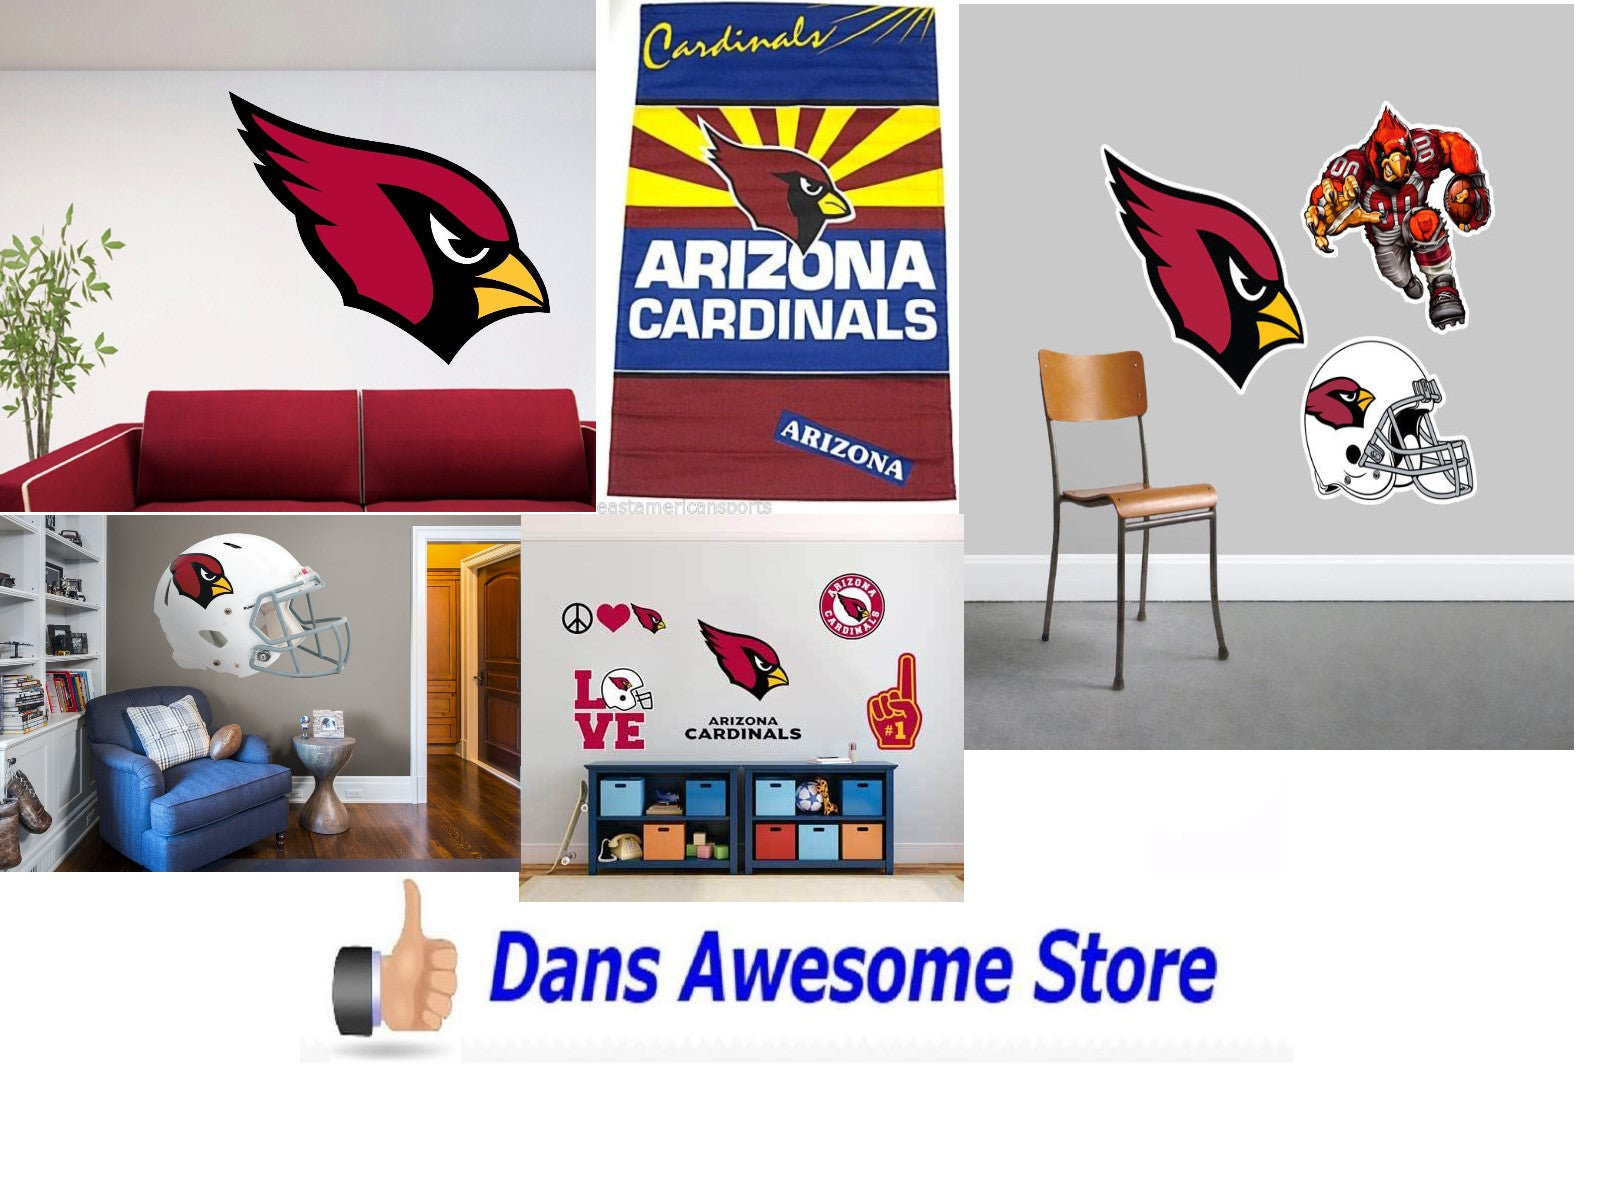 Arizona Cardinals Wall - Dans Awesome Store